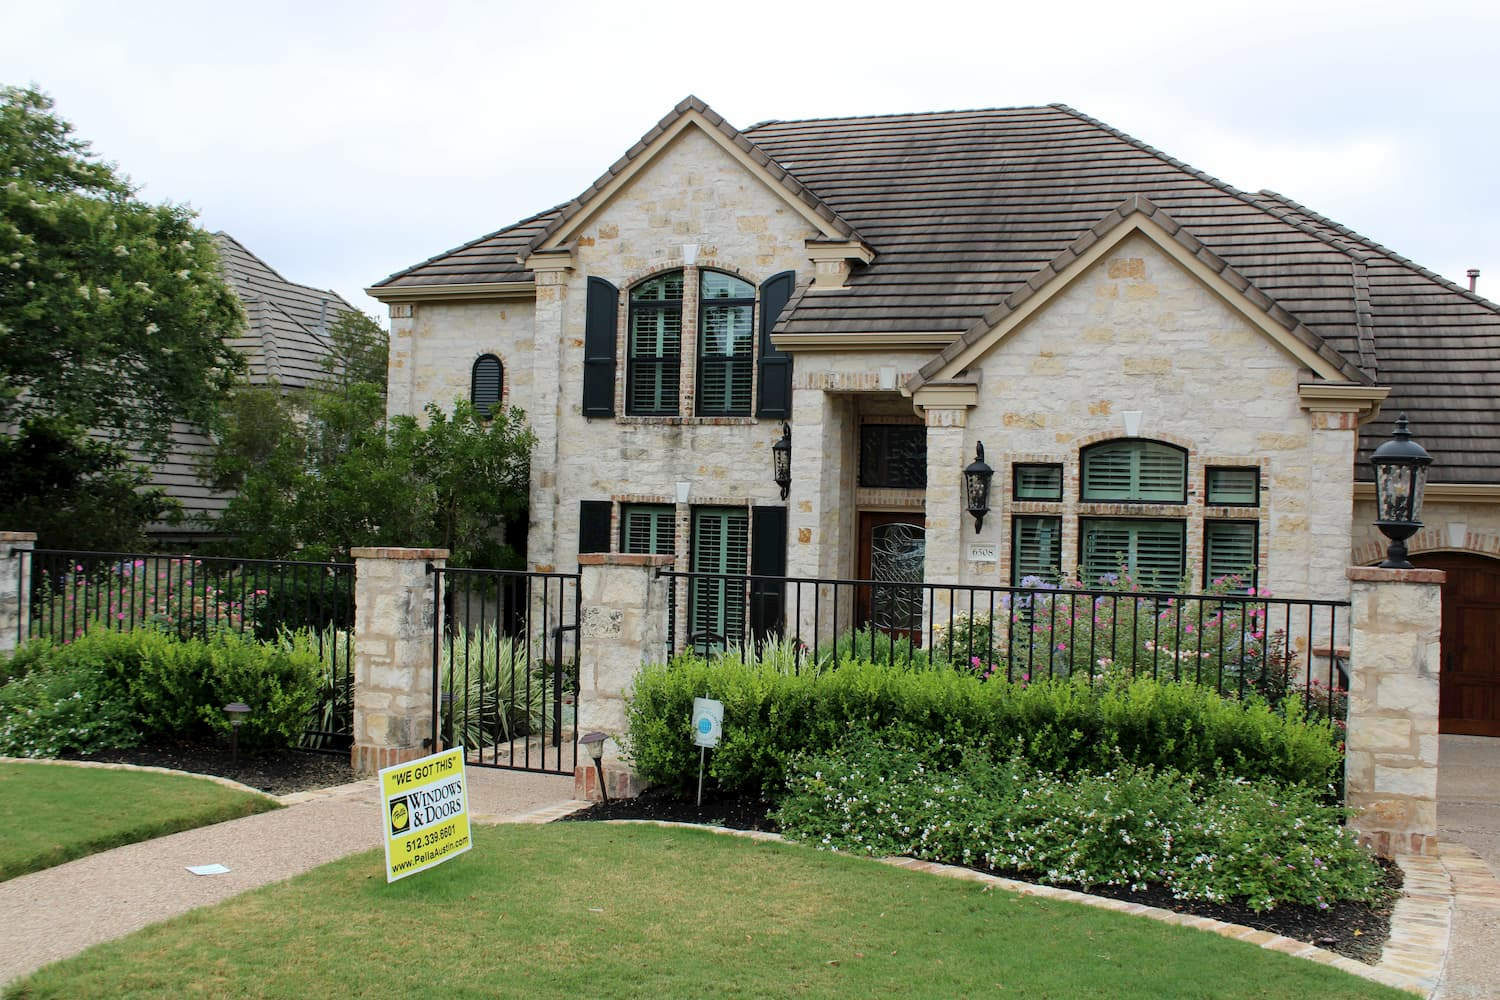 Exterior shot of Austin area home with Pella sign in front yard